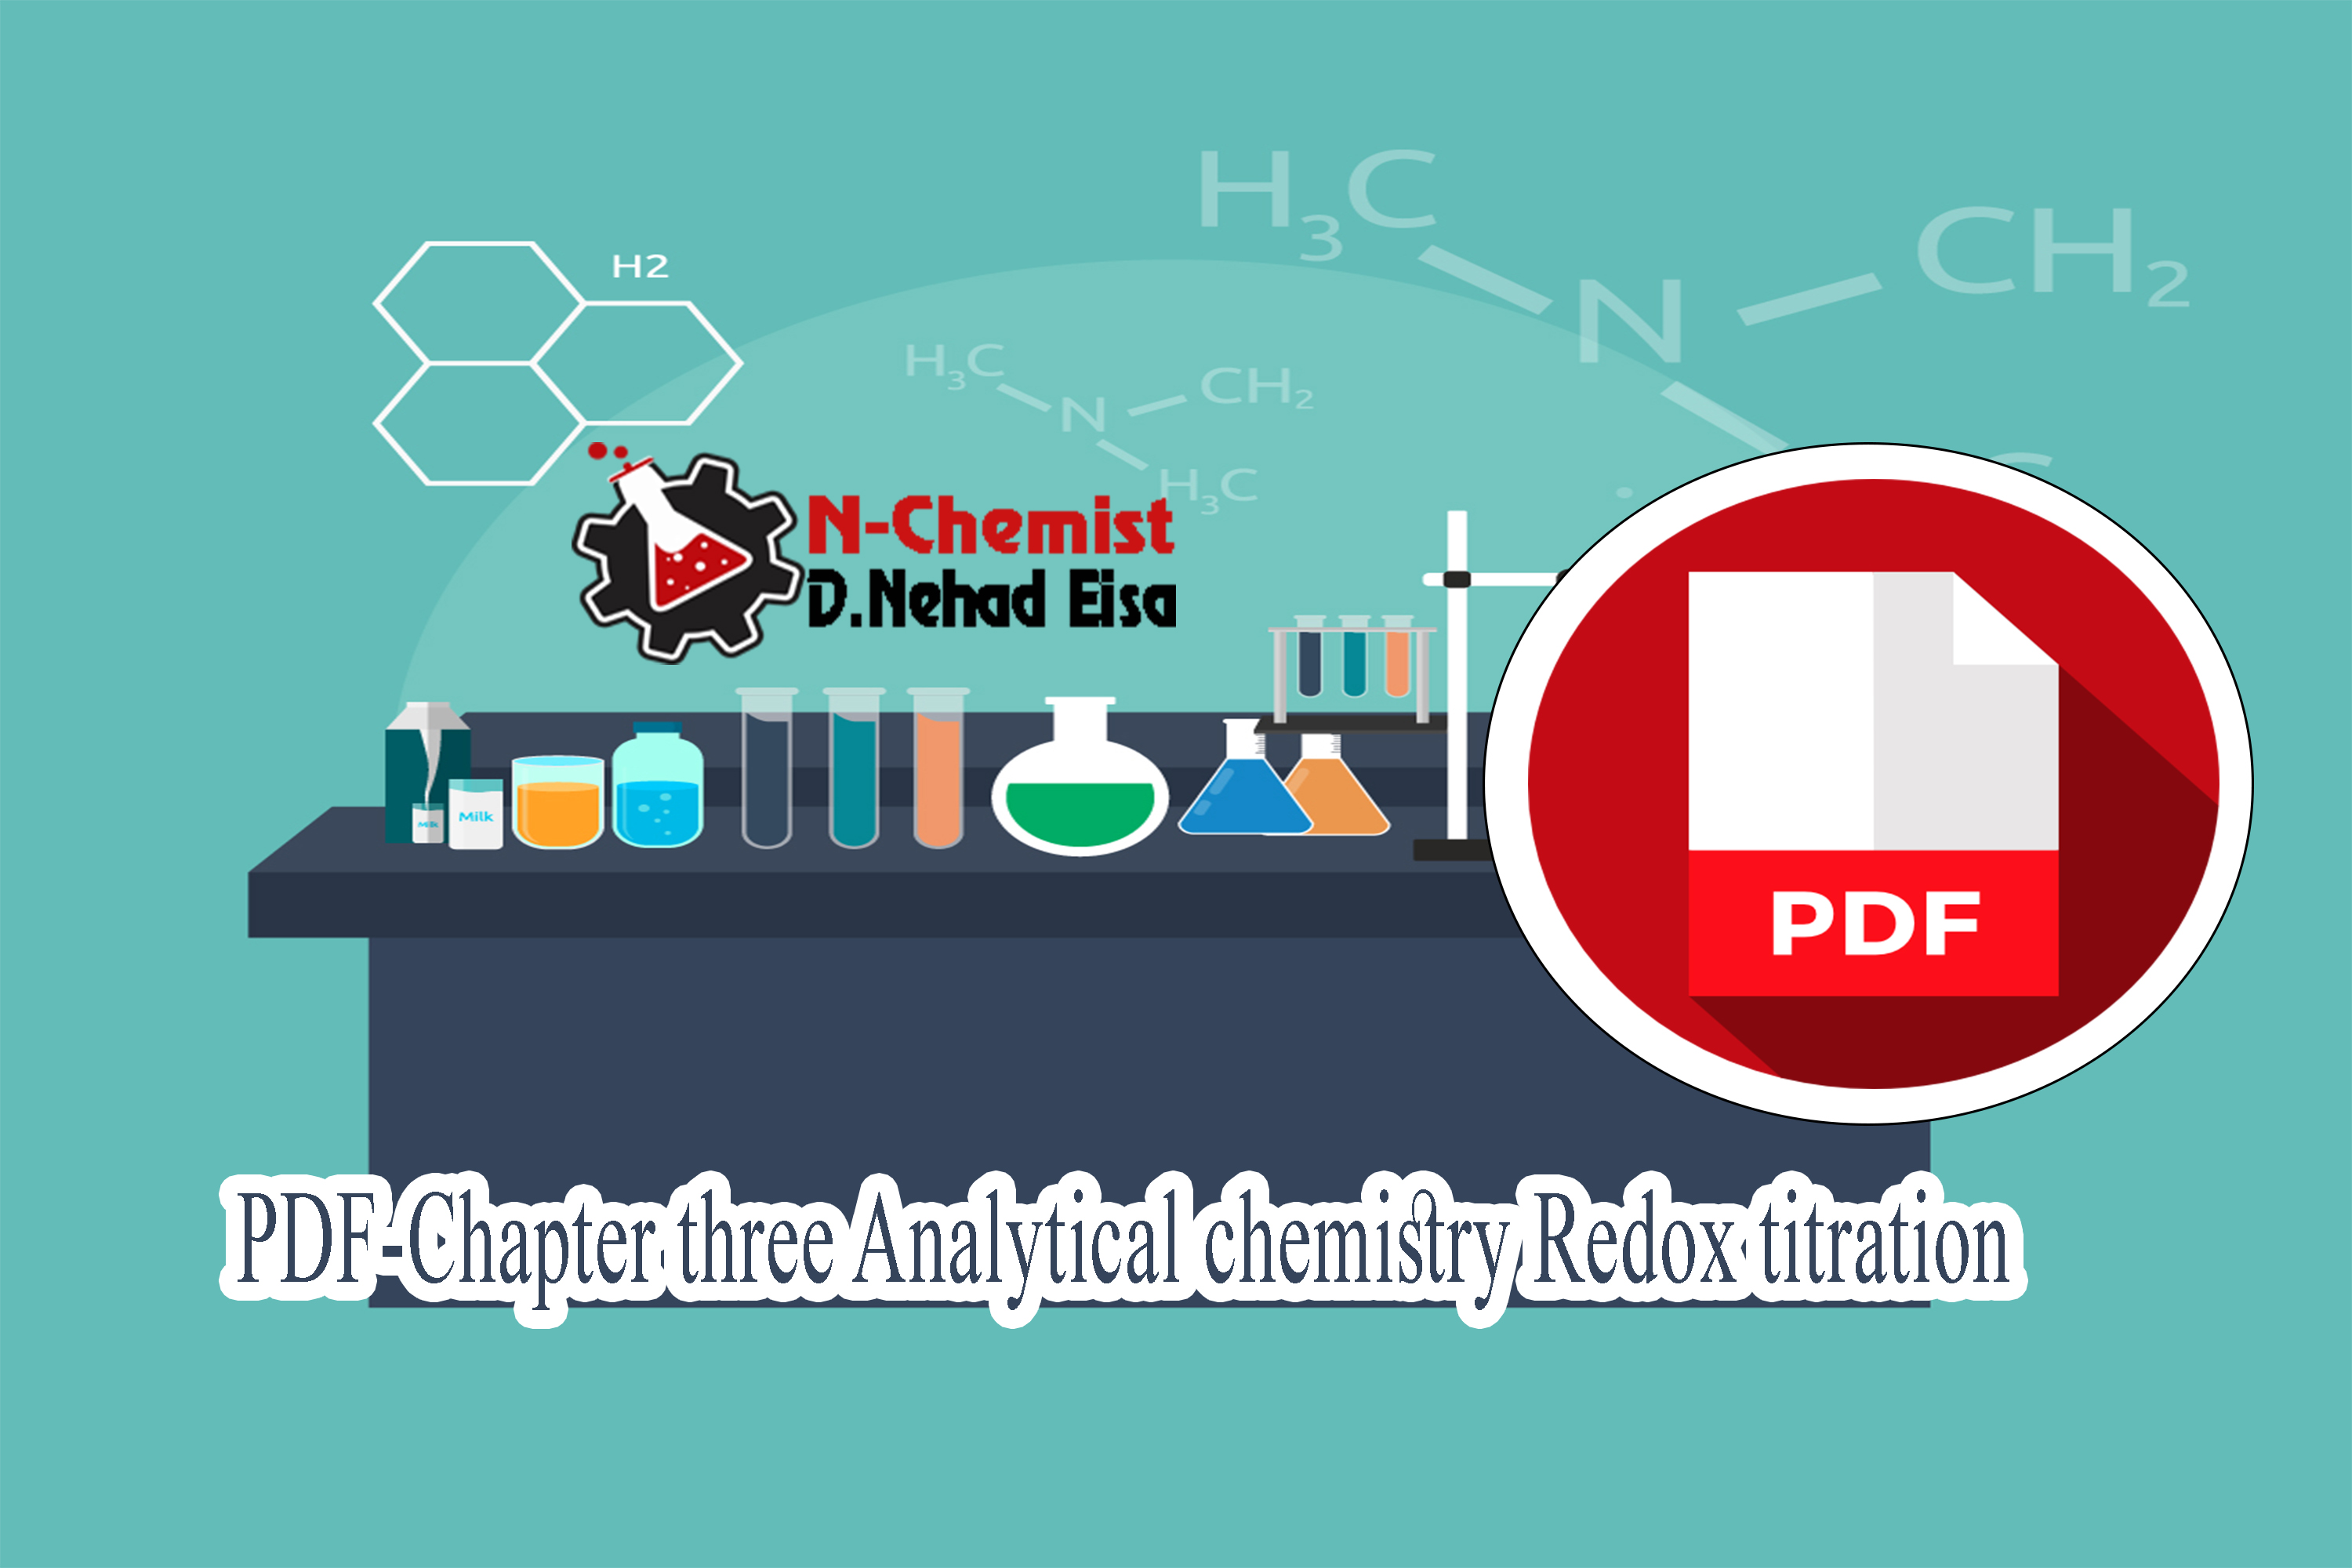 PDF-Chapter three Analytical chemistry Redox titration